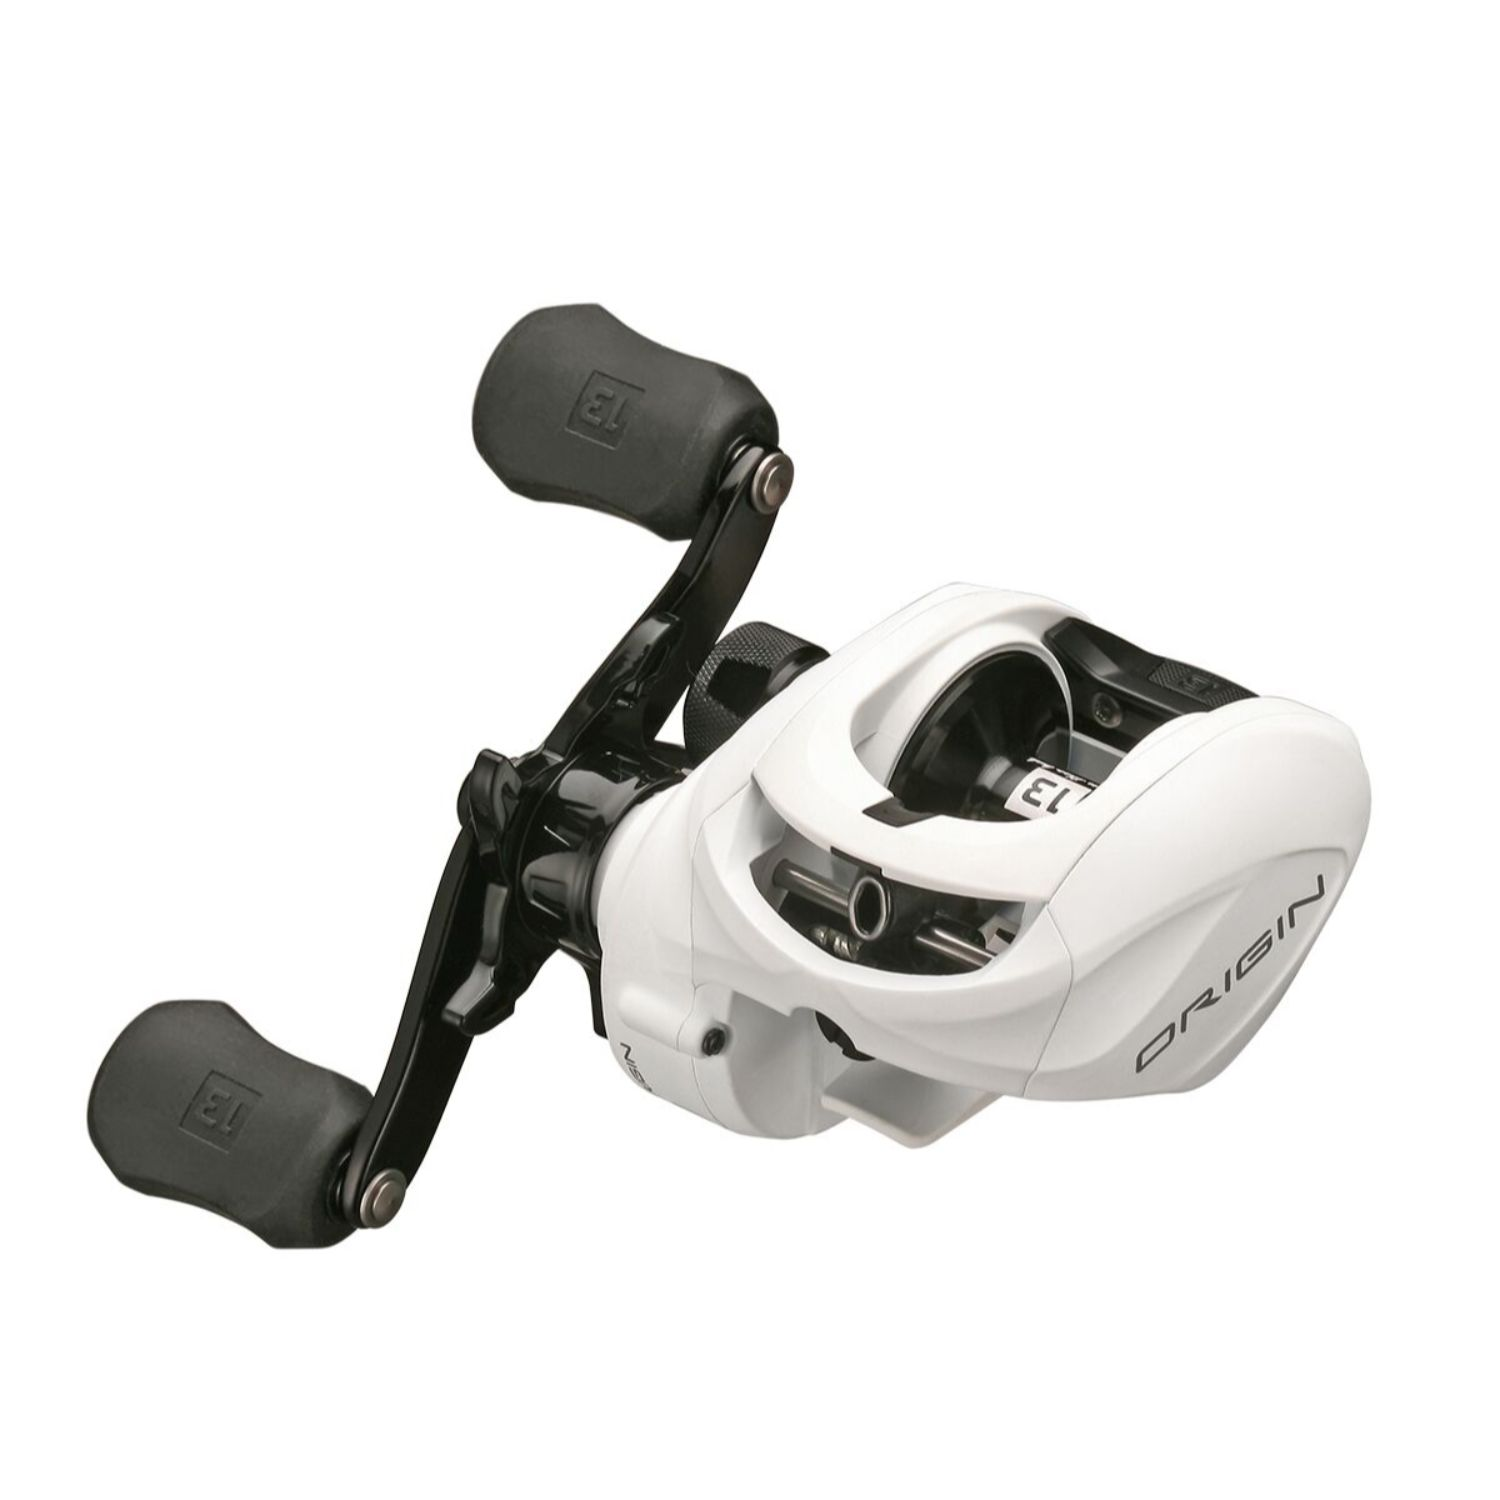 13 Fishing ORIGIN C Baitcast Reel 6.6:1 RH